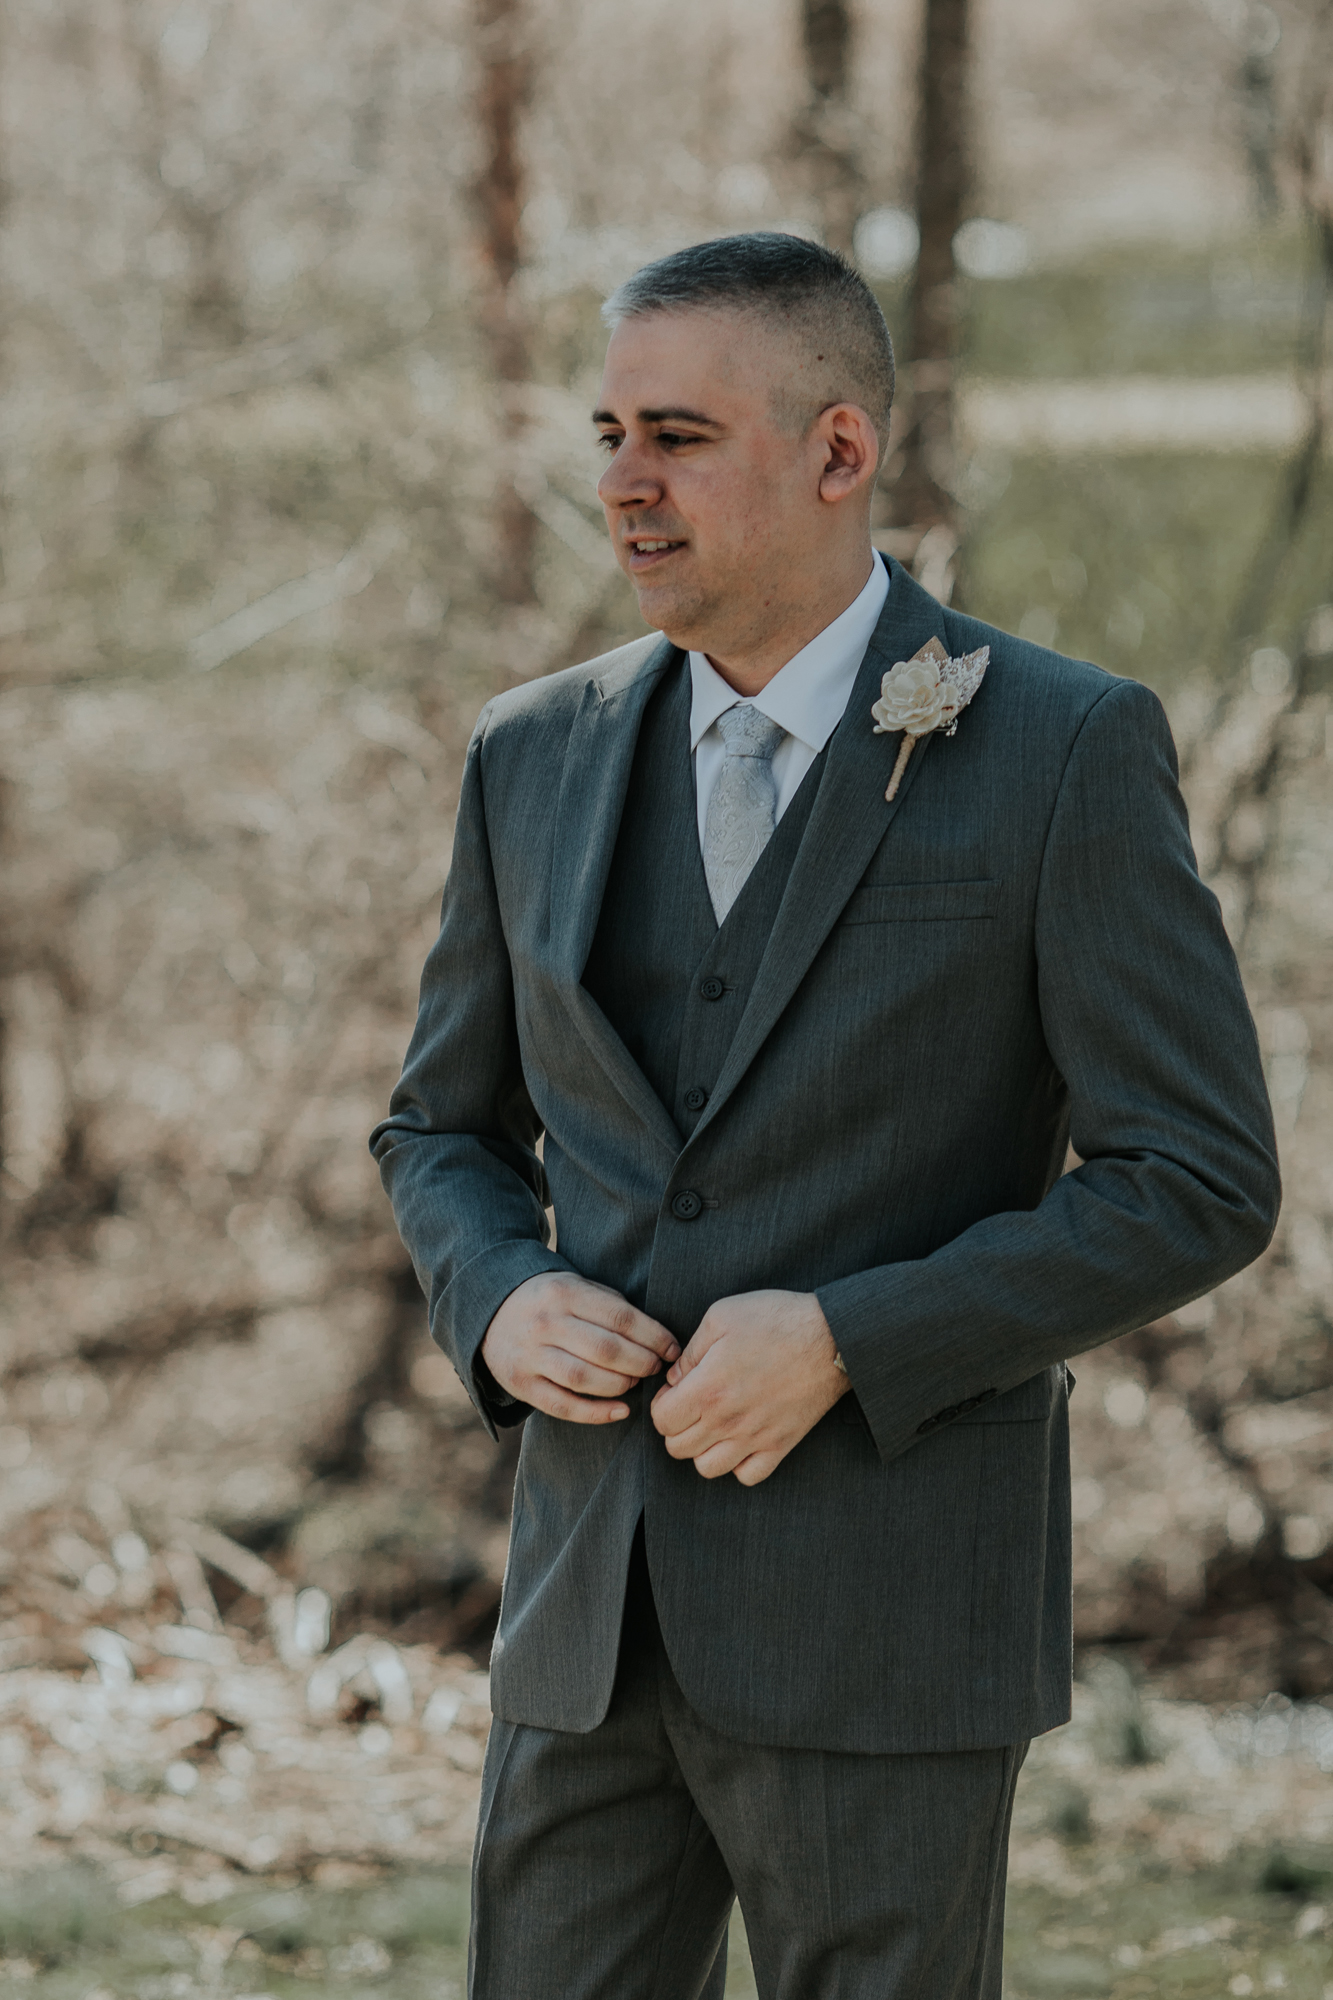 husband-photography-in-lehigh-valley